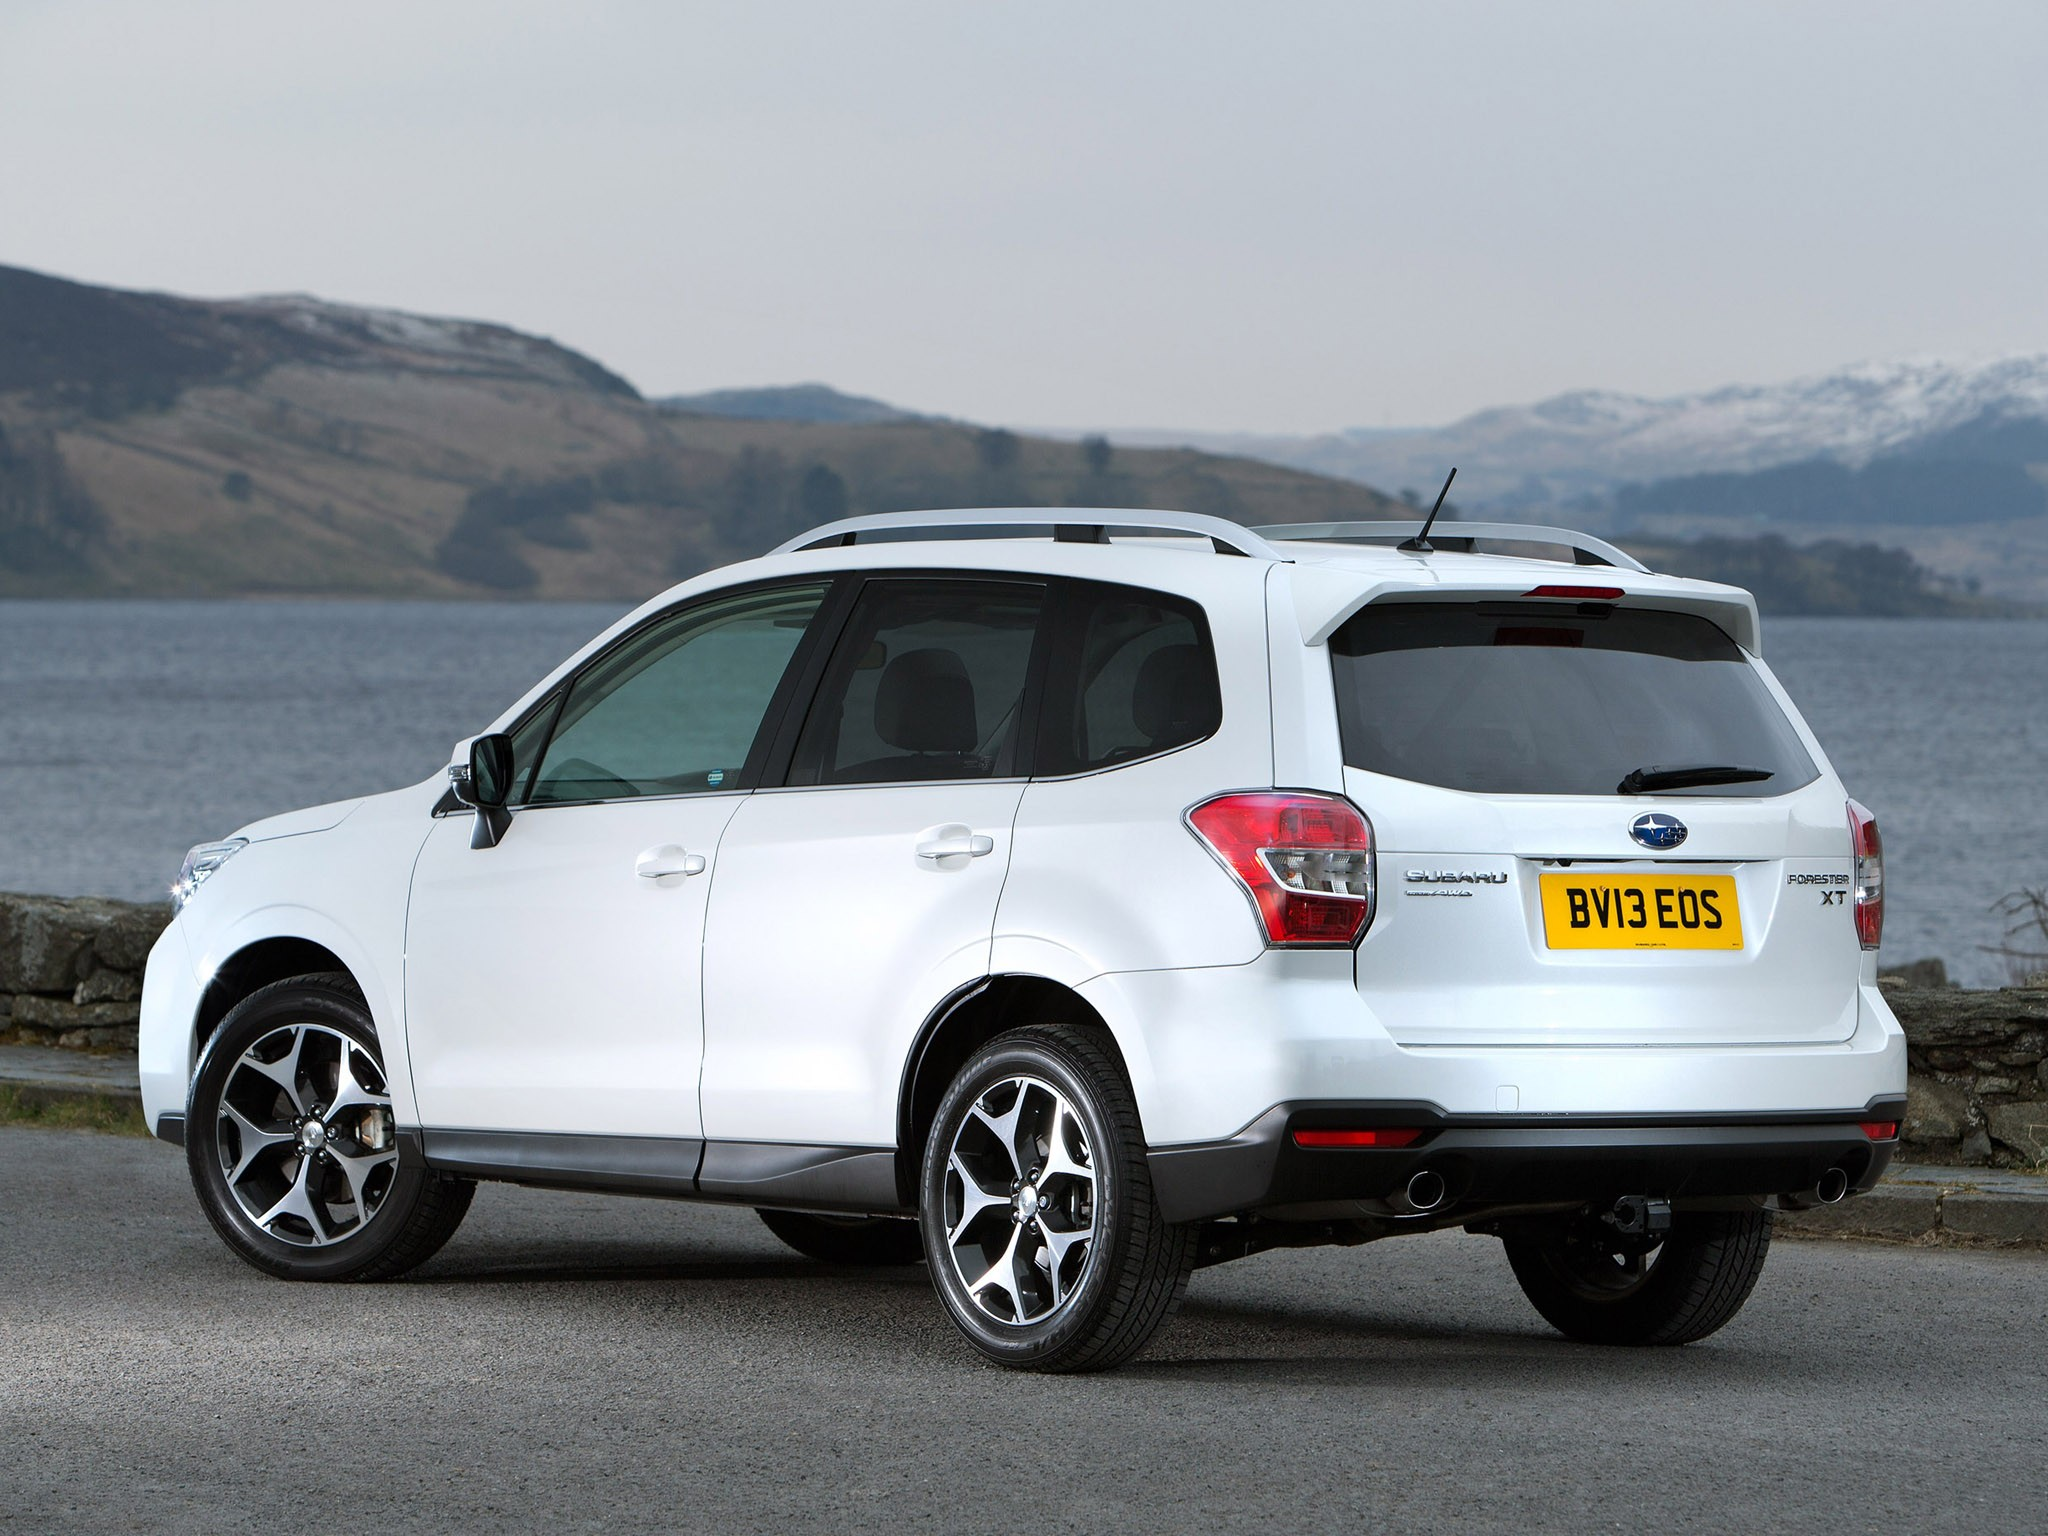 2013 Subaru Forester XT UK